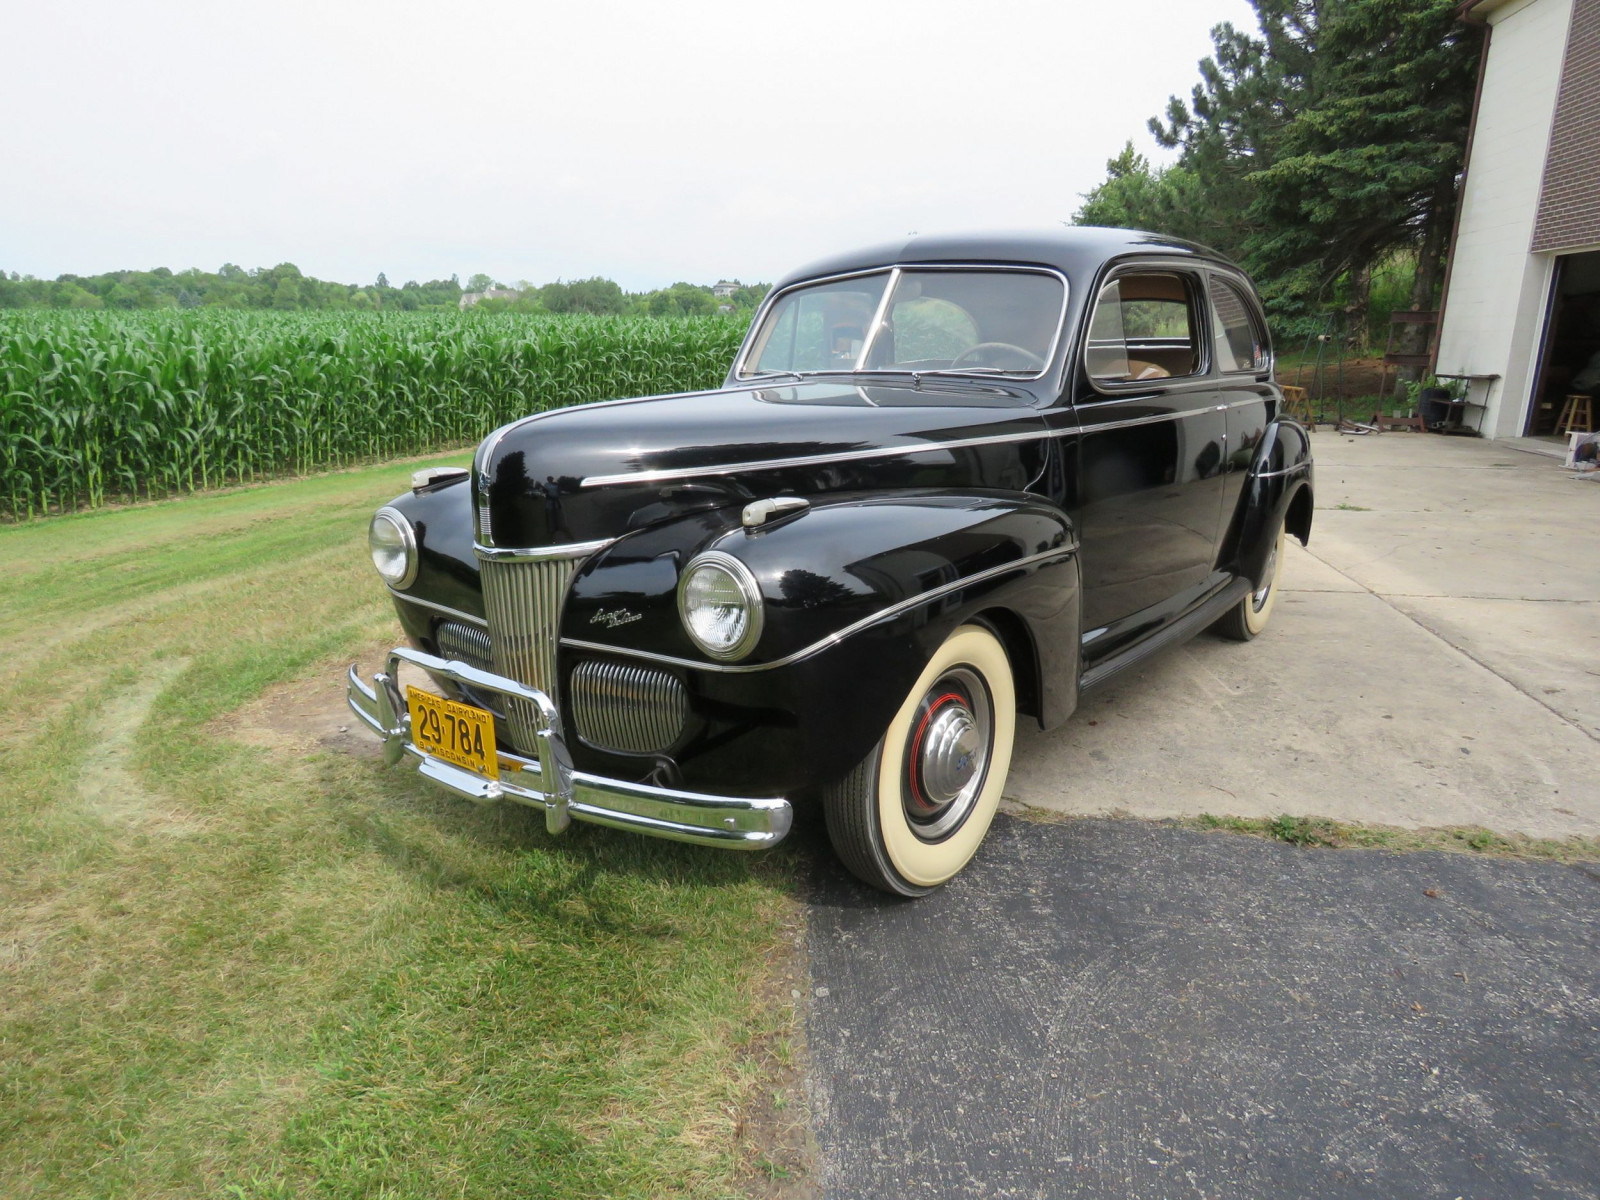 1941 Ford Super Deluxe Tudor Sedan - Image 1